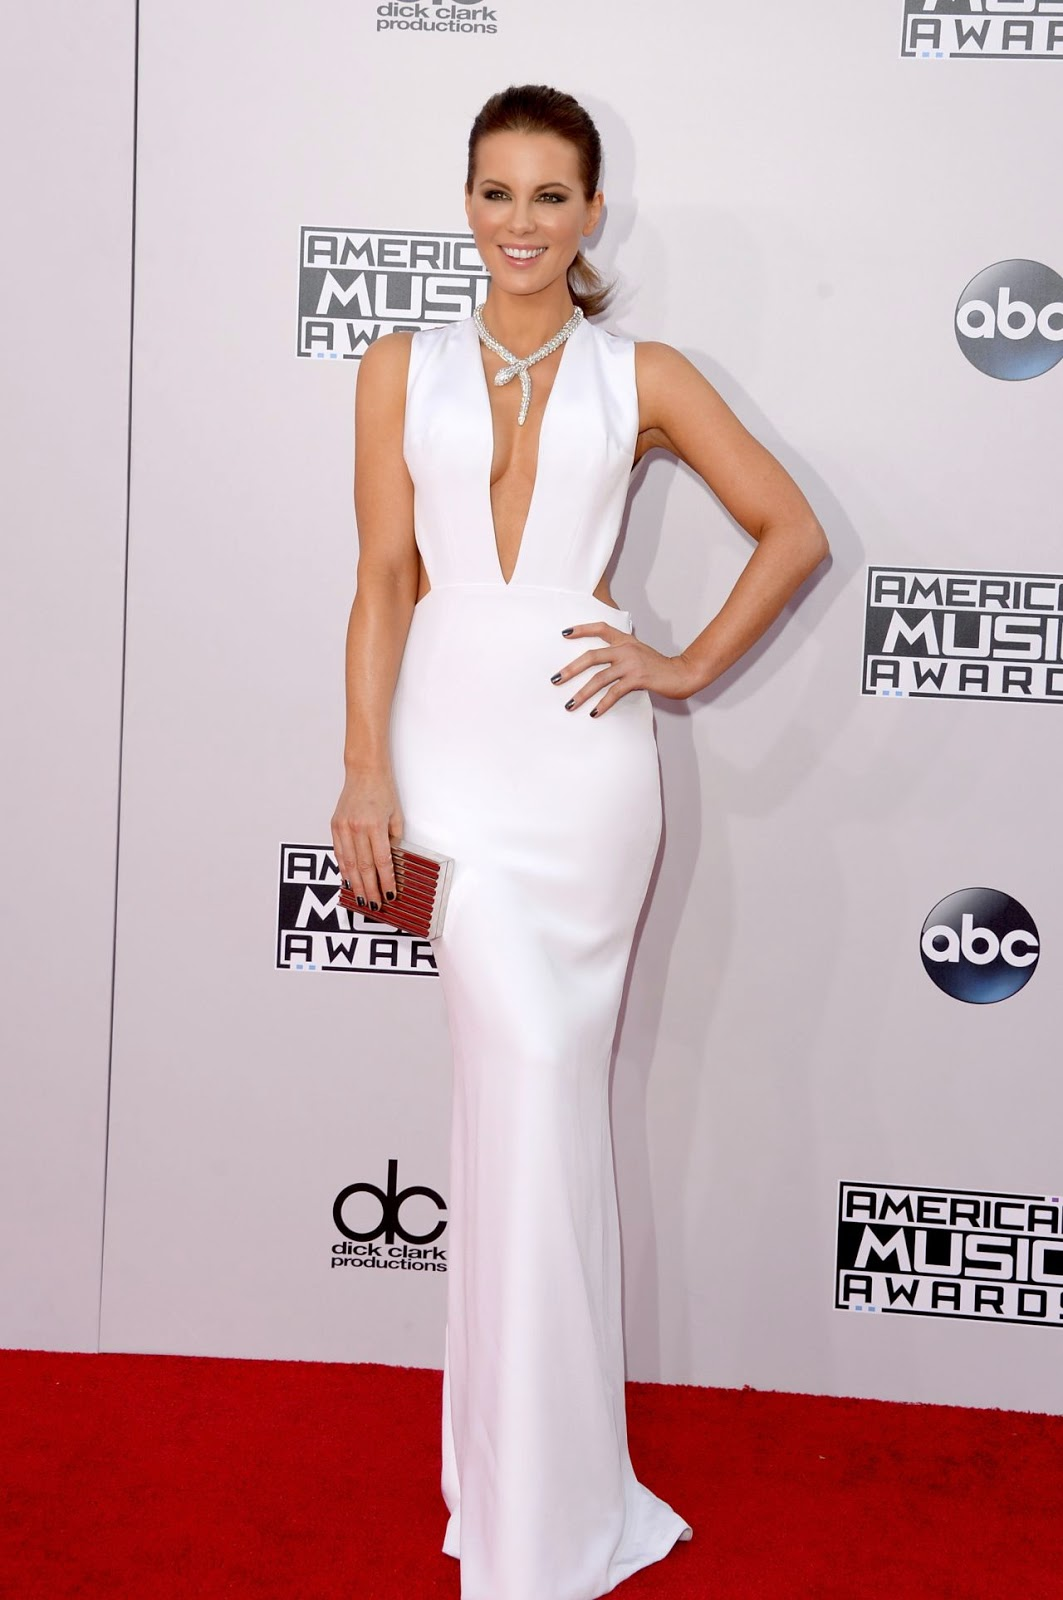 Kate Beckinsale wears a plunging white gown to the 2014 American Music Awards